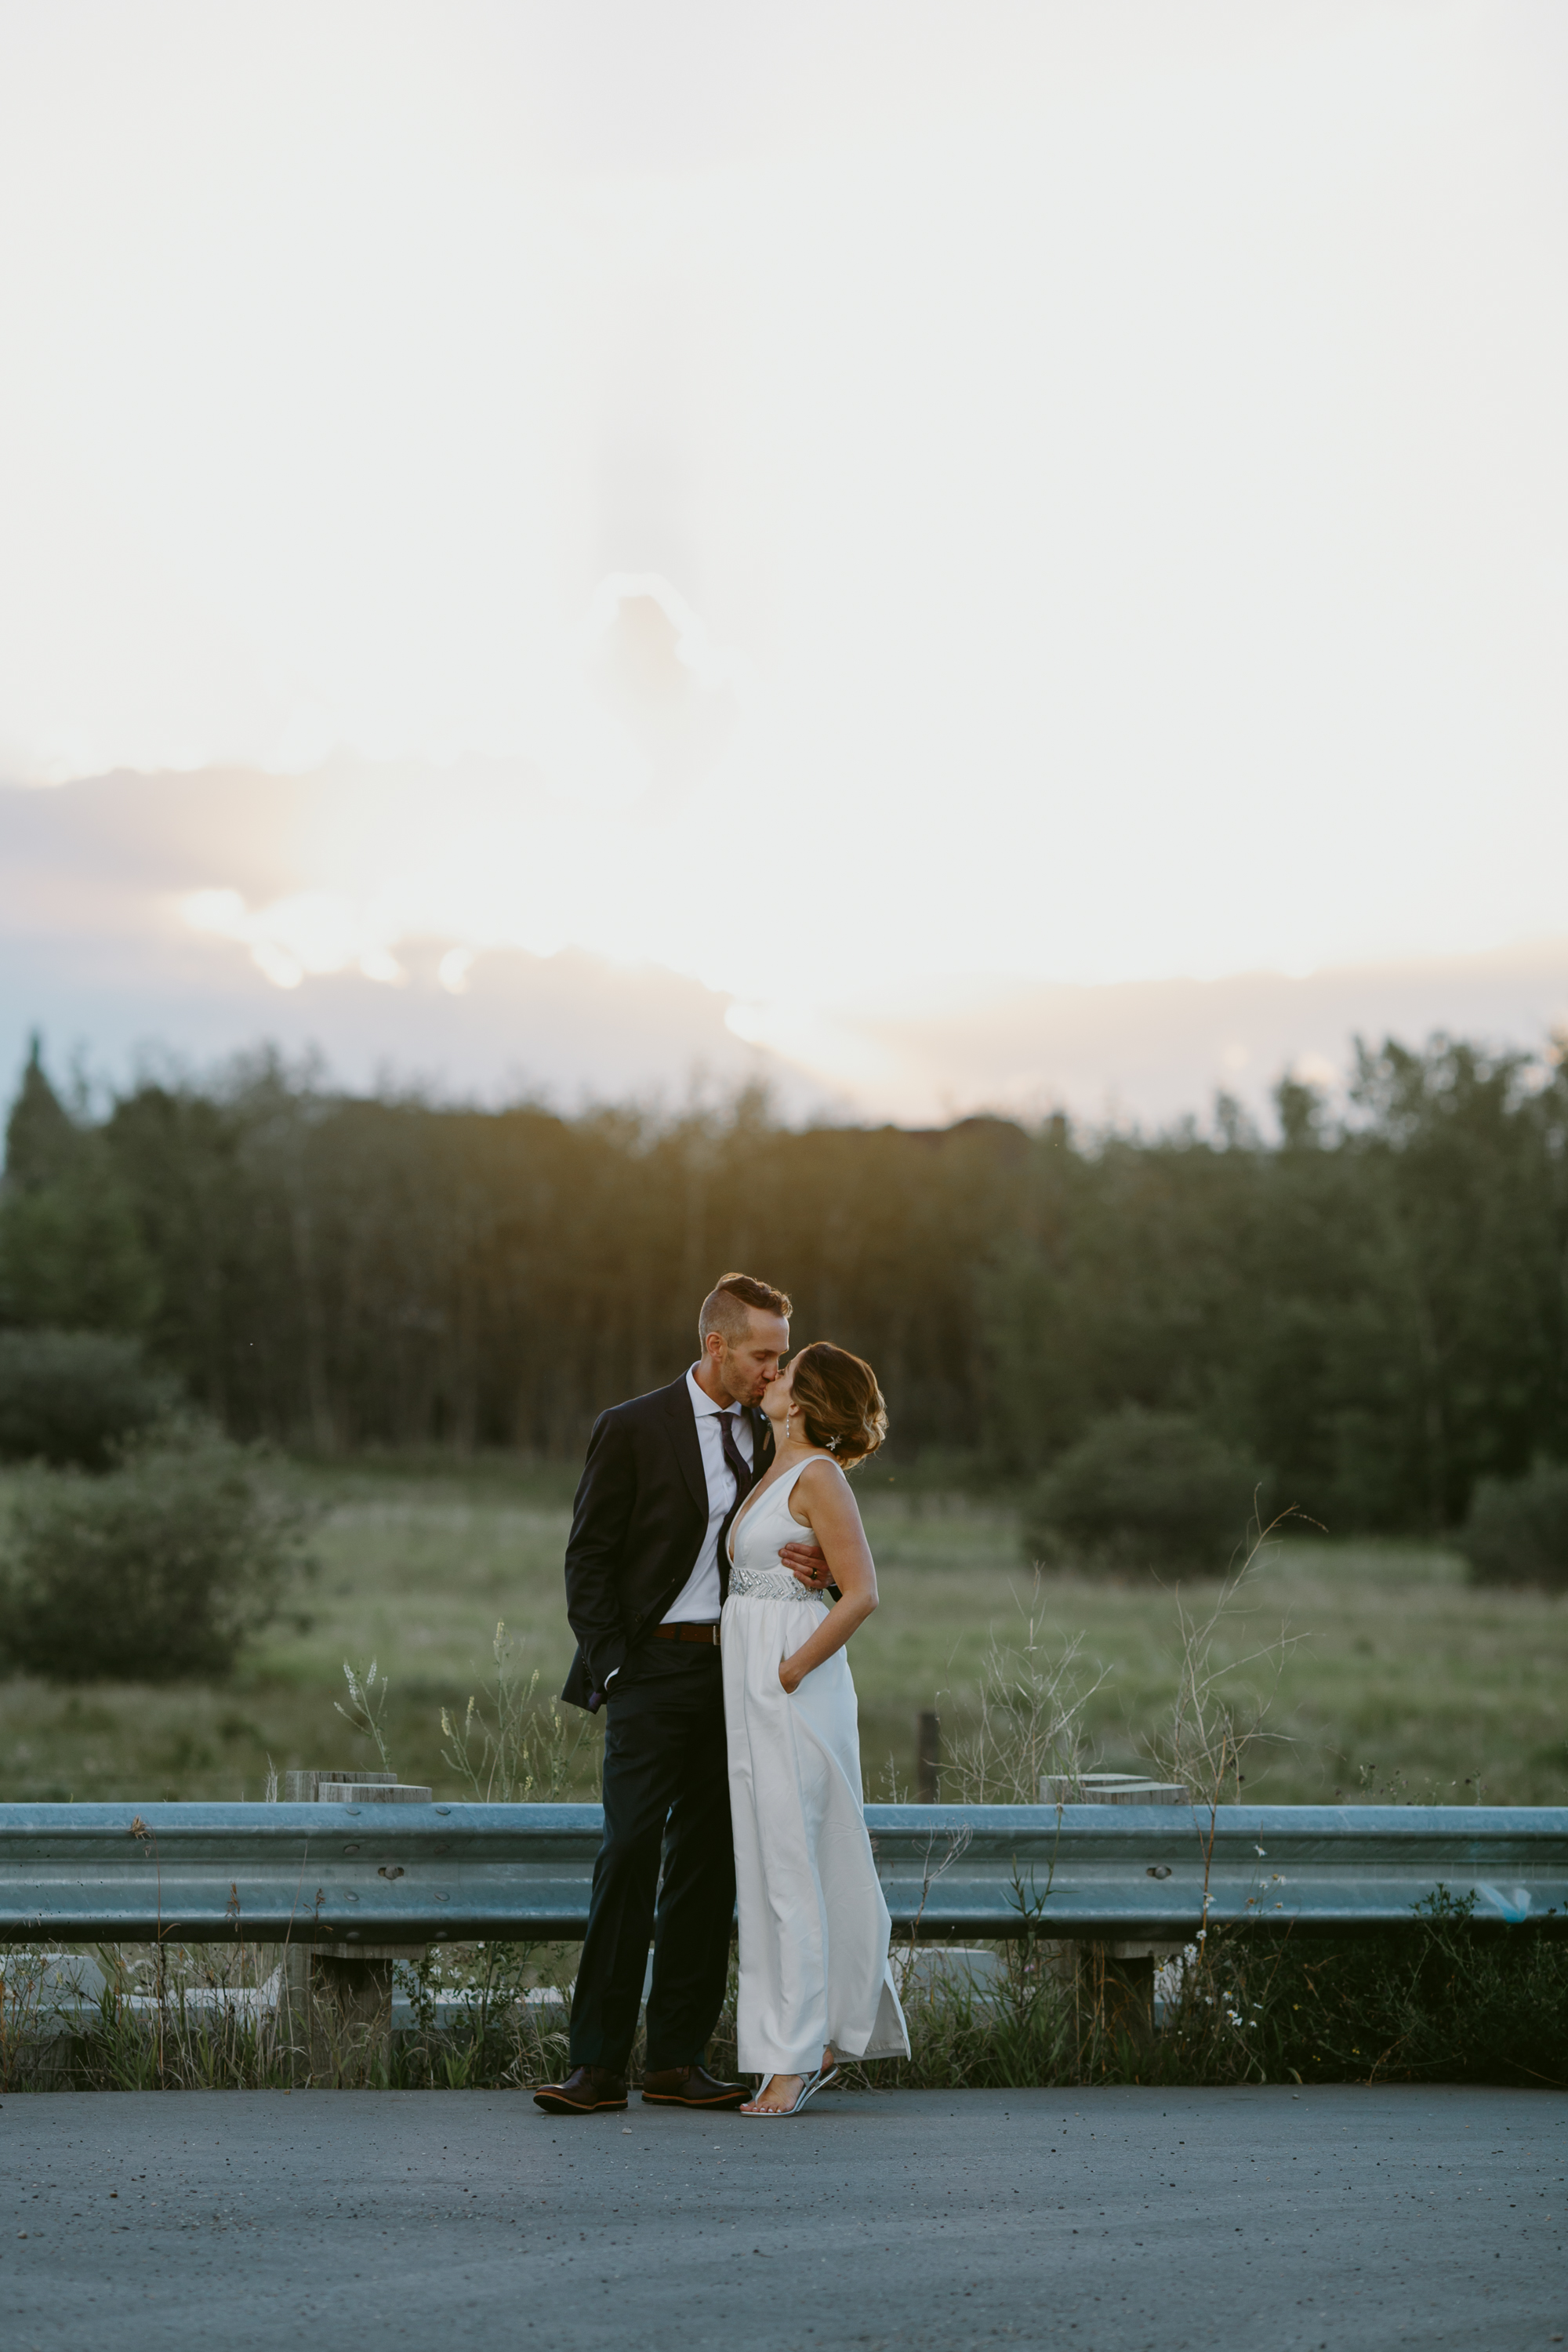 calgary-wedding-photographer-71.jpg